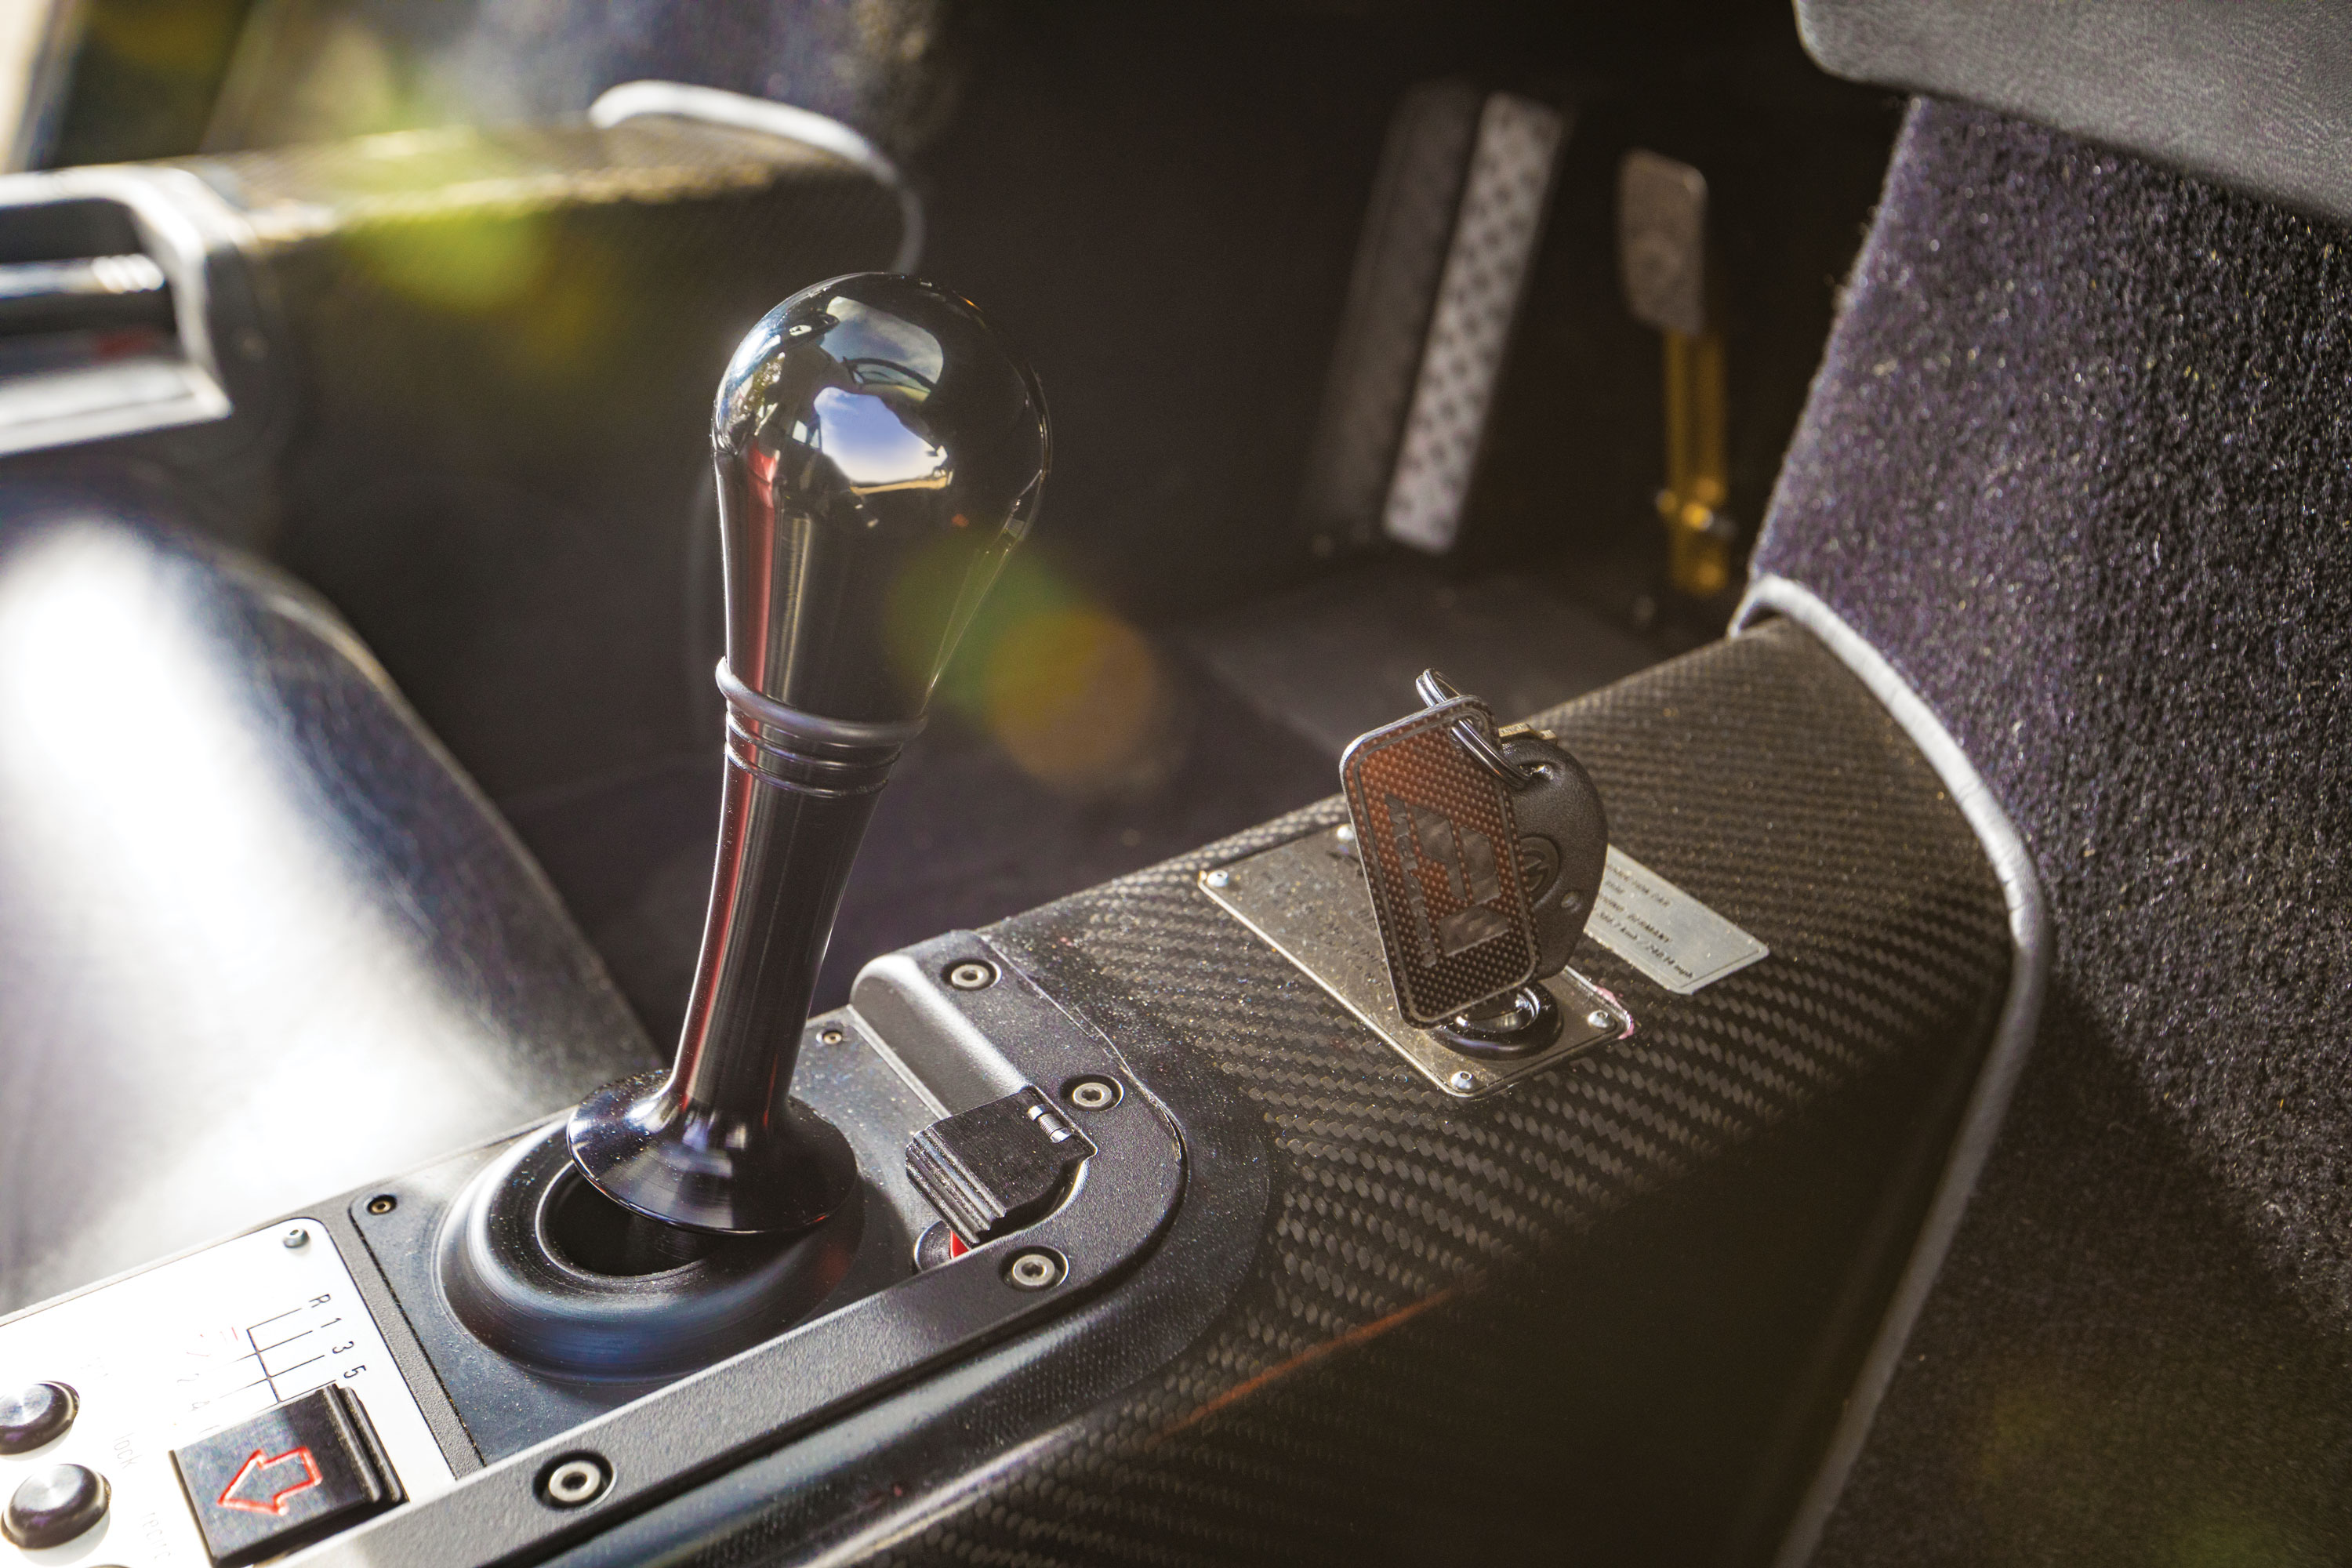 Key and shifter of a McLaren F1